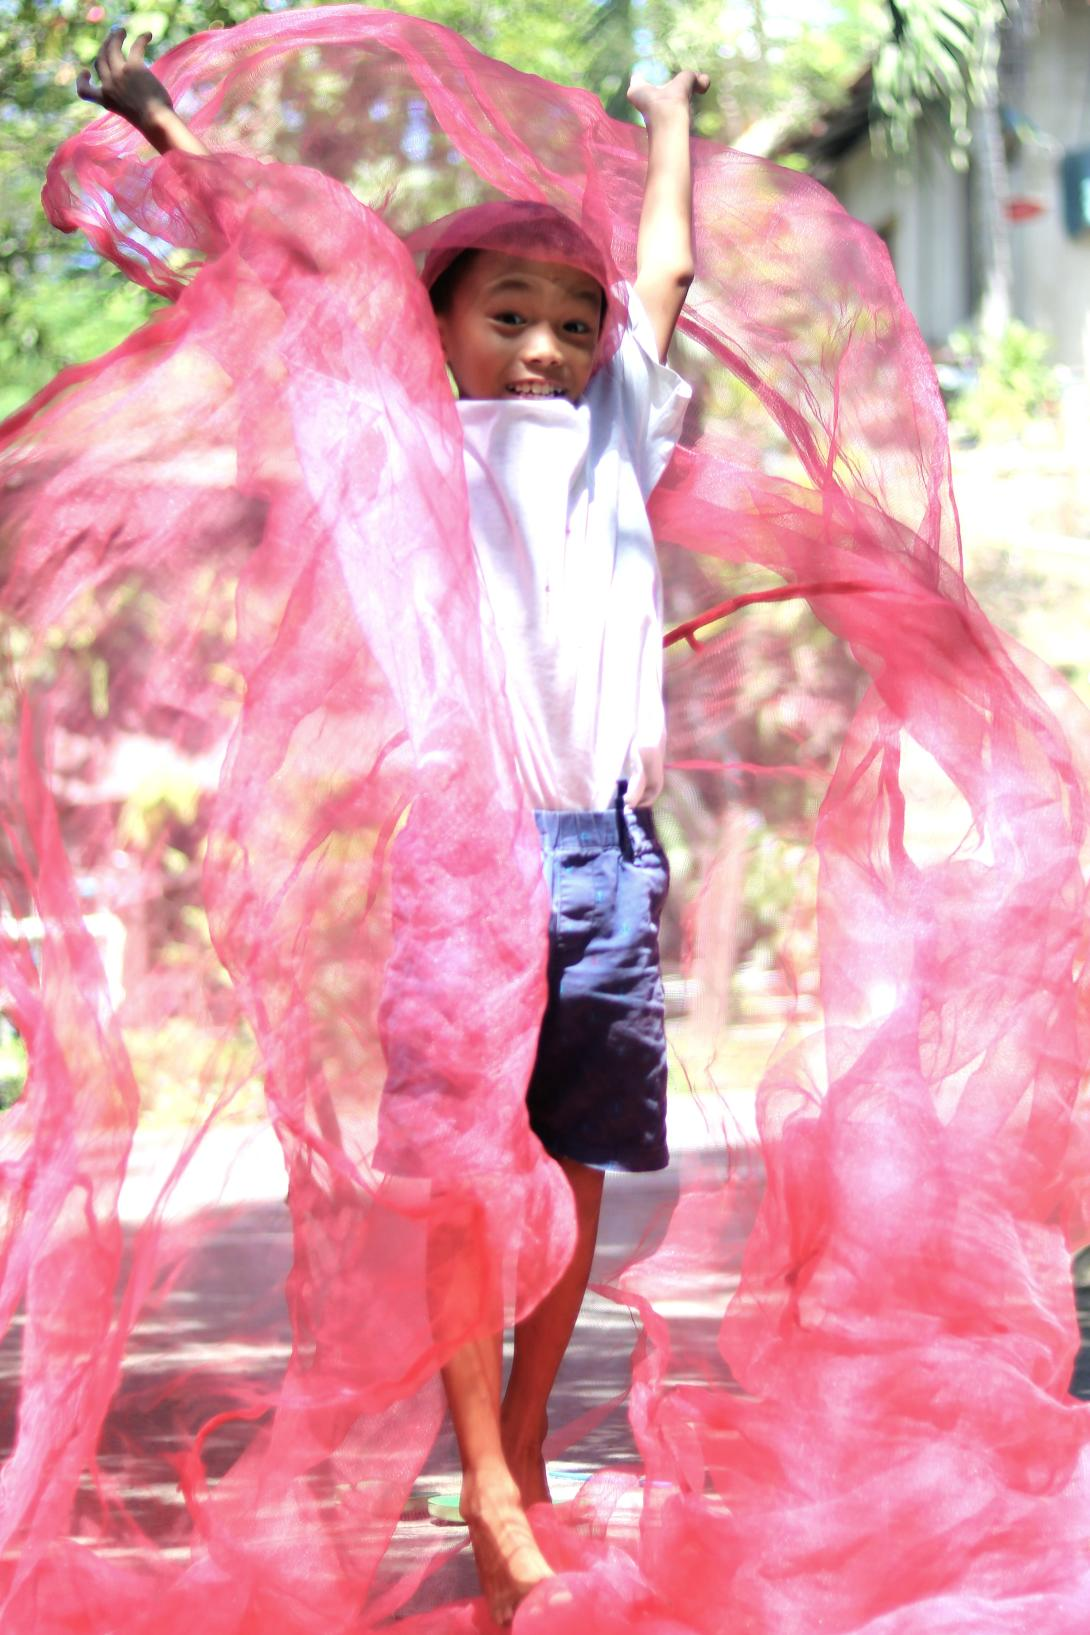 Local boy plays in a mosquito net in the Philippines.